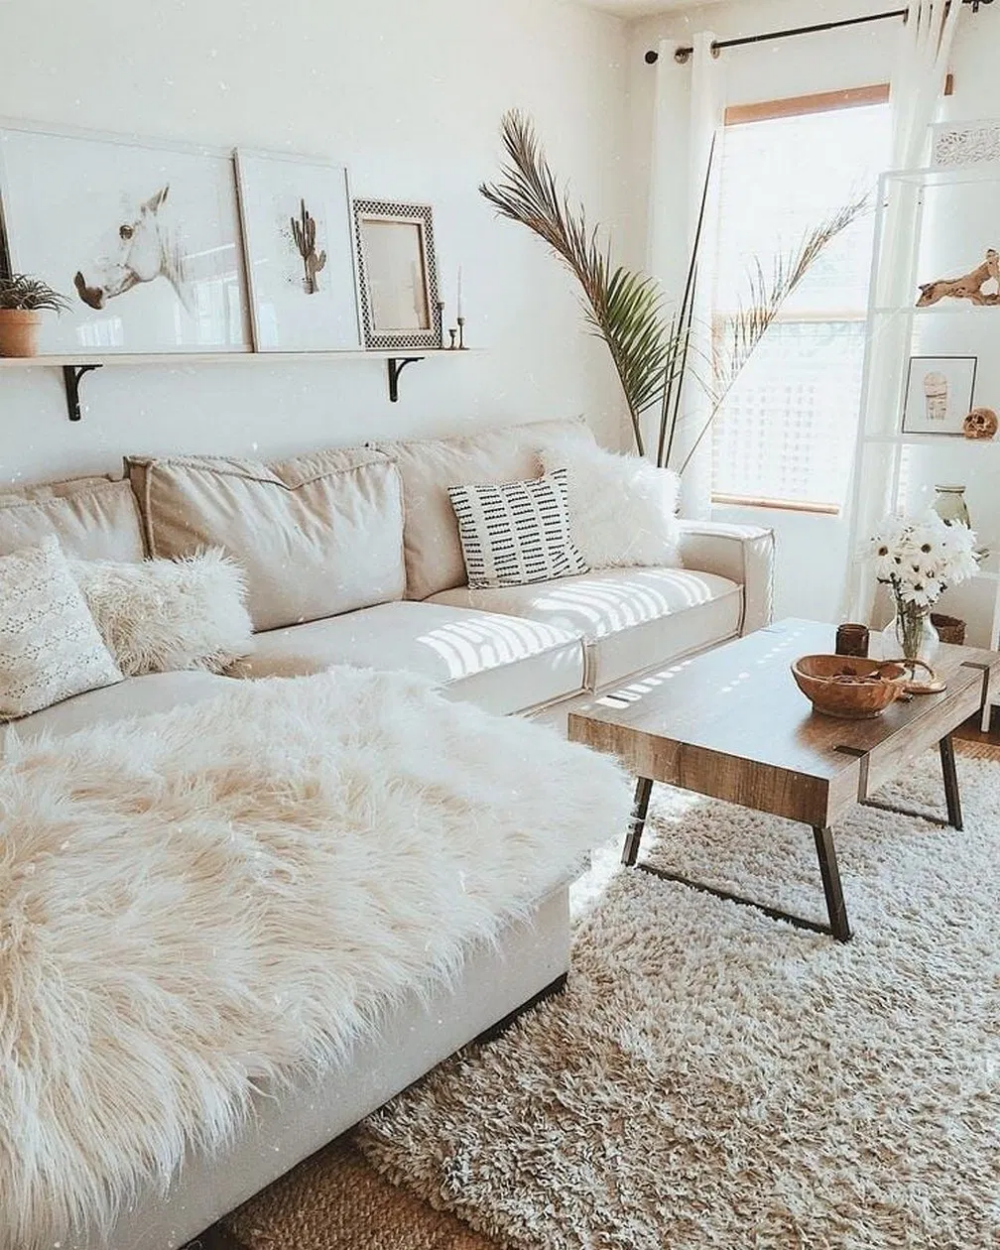 17 Awesome Living Room Decorating Ideas In Elegant White 42 Livingroomdecor Whi Simple Living Room Designs Farm House Living Room Living Room Decor Apartment